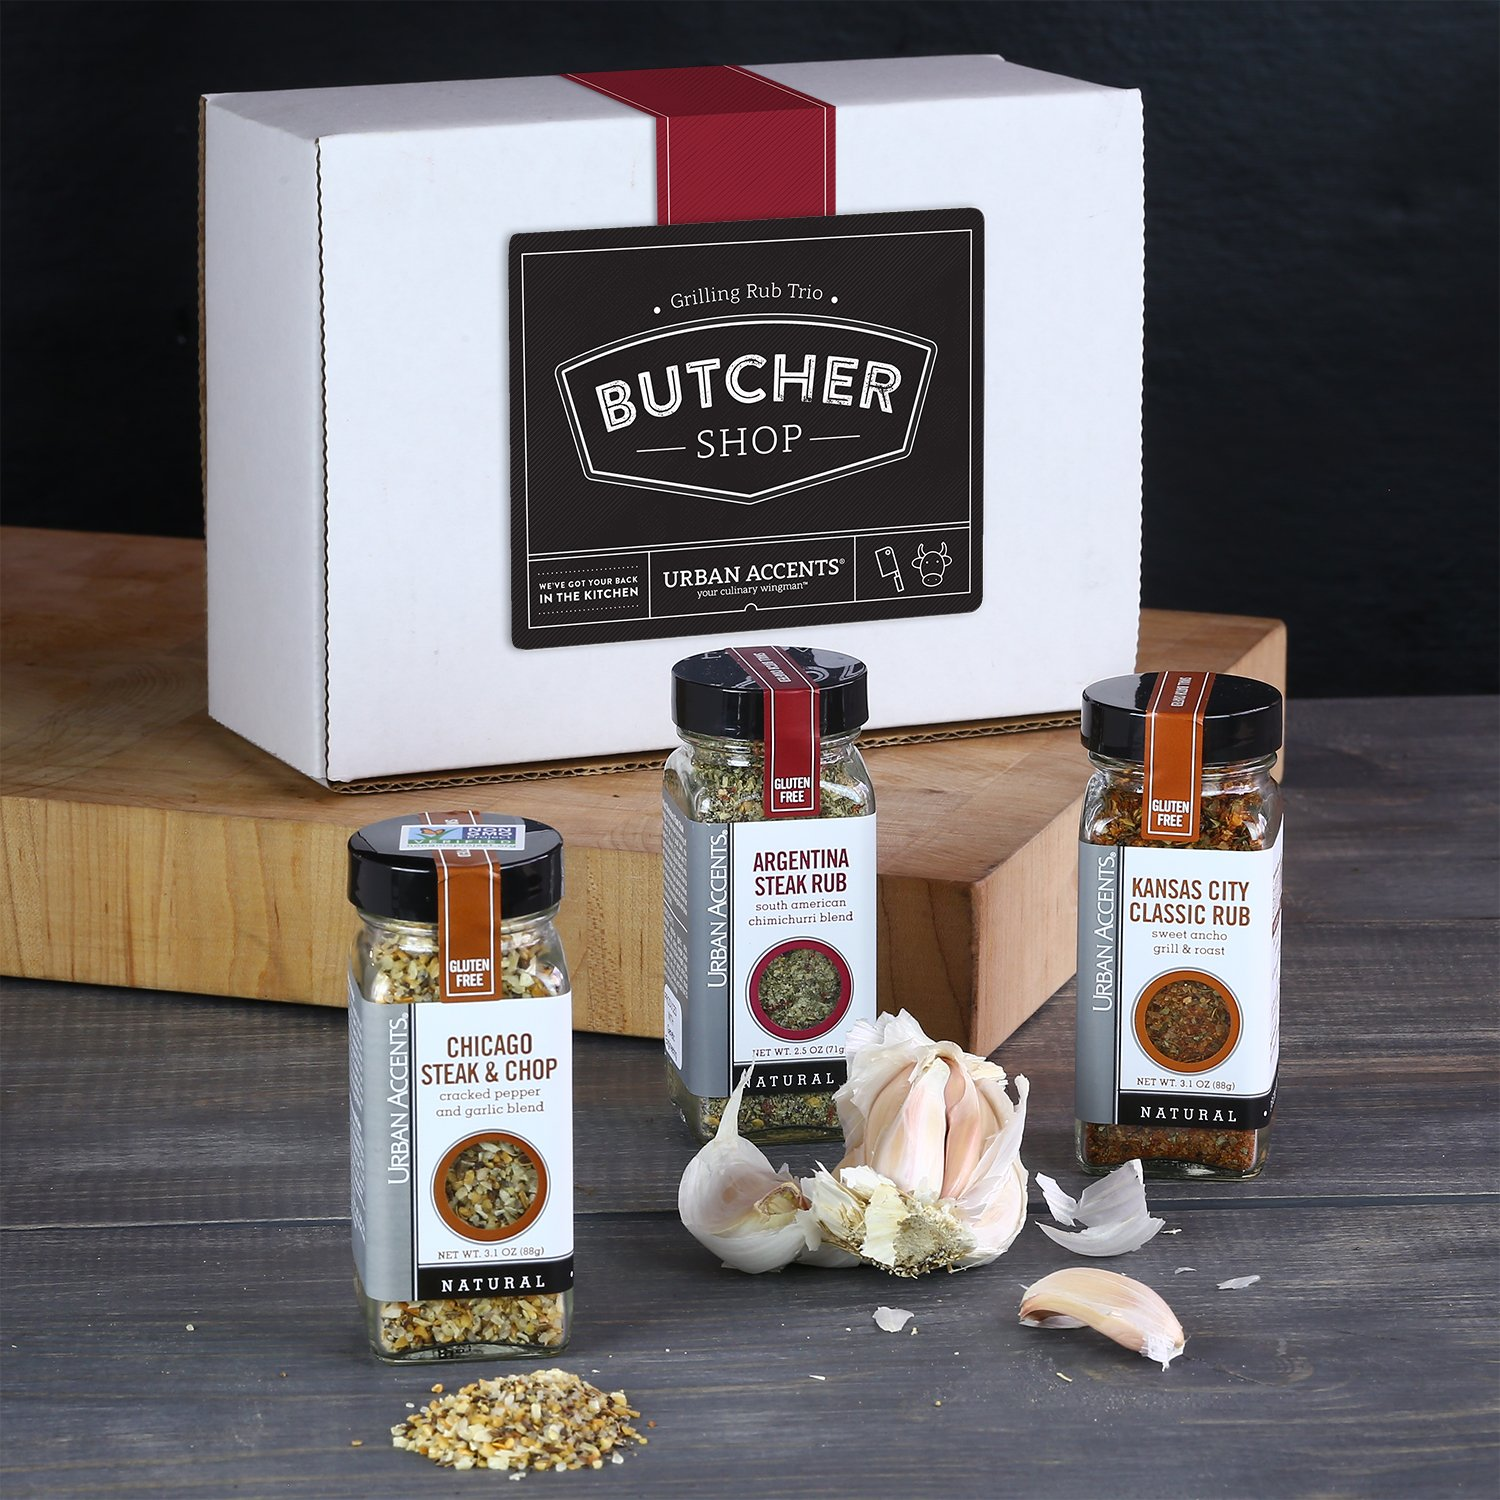 BUTCHER SHOP, A Gourmet Grilling Rub Trio of Spices Gift Set, Perfect for Weddings, Housewarmings or Any Occasion - Urban Accents by Urban Accents (Image #4)